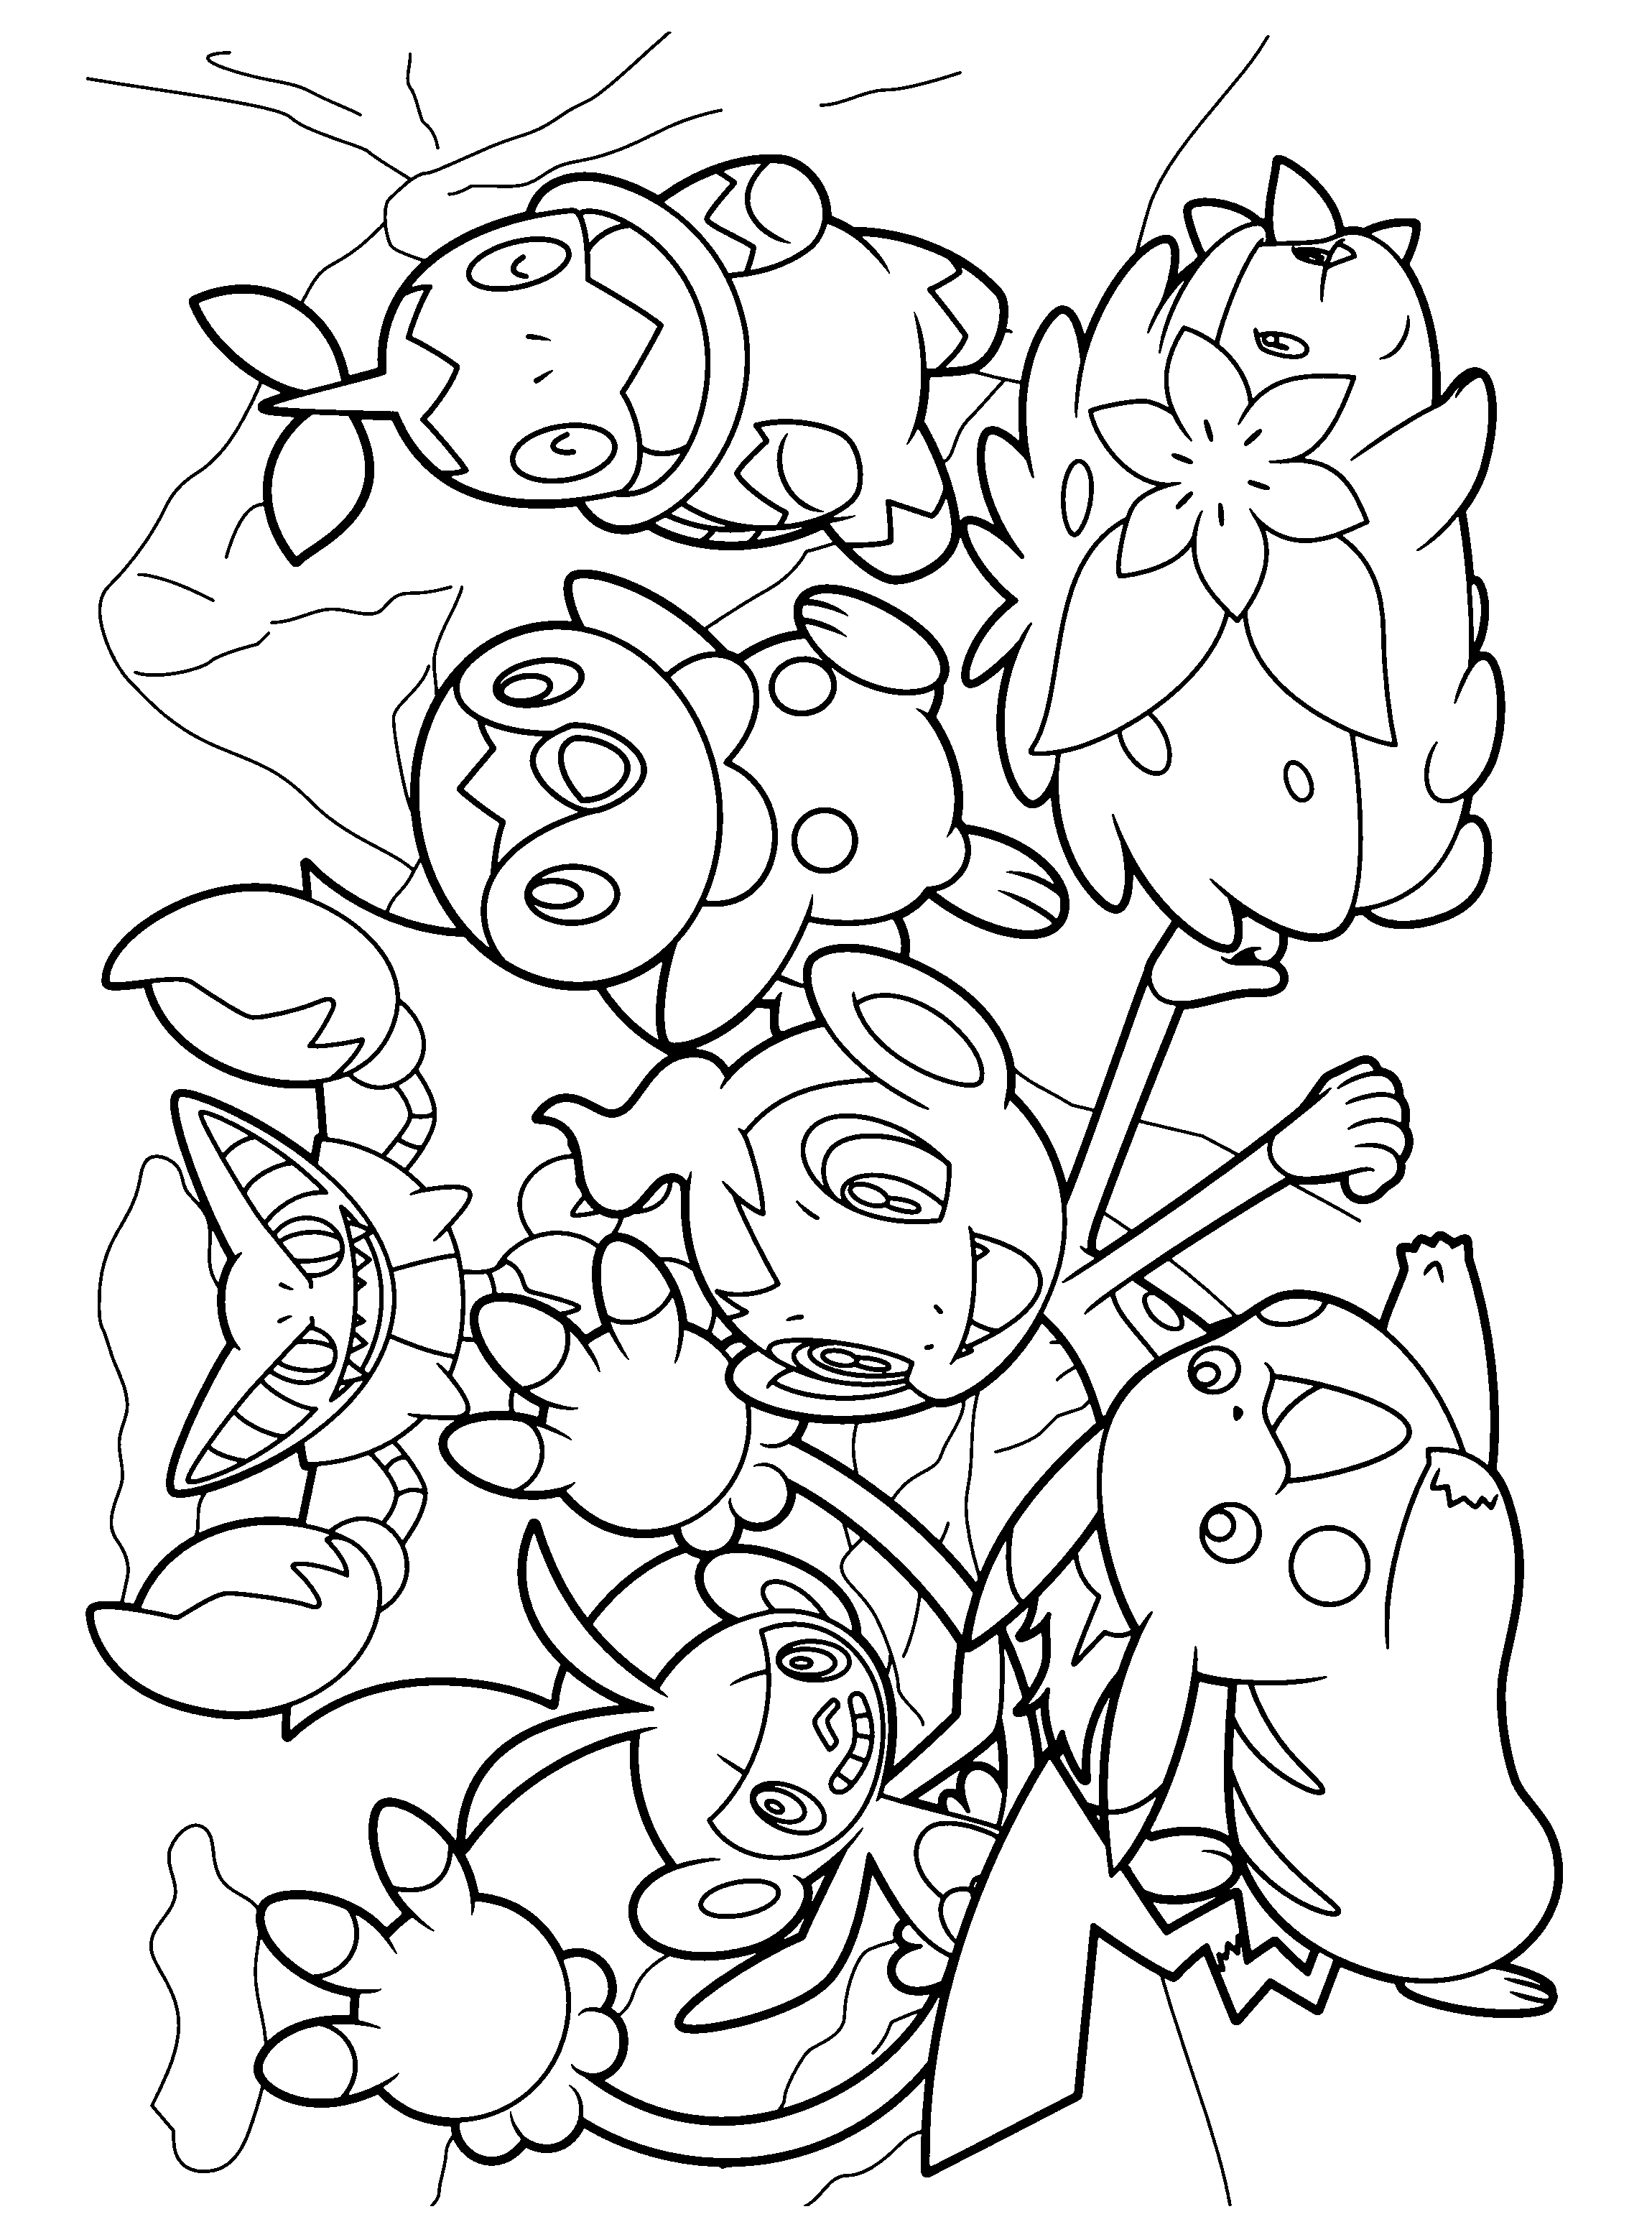 chimchar pokemon coloring pages - photo#8